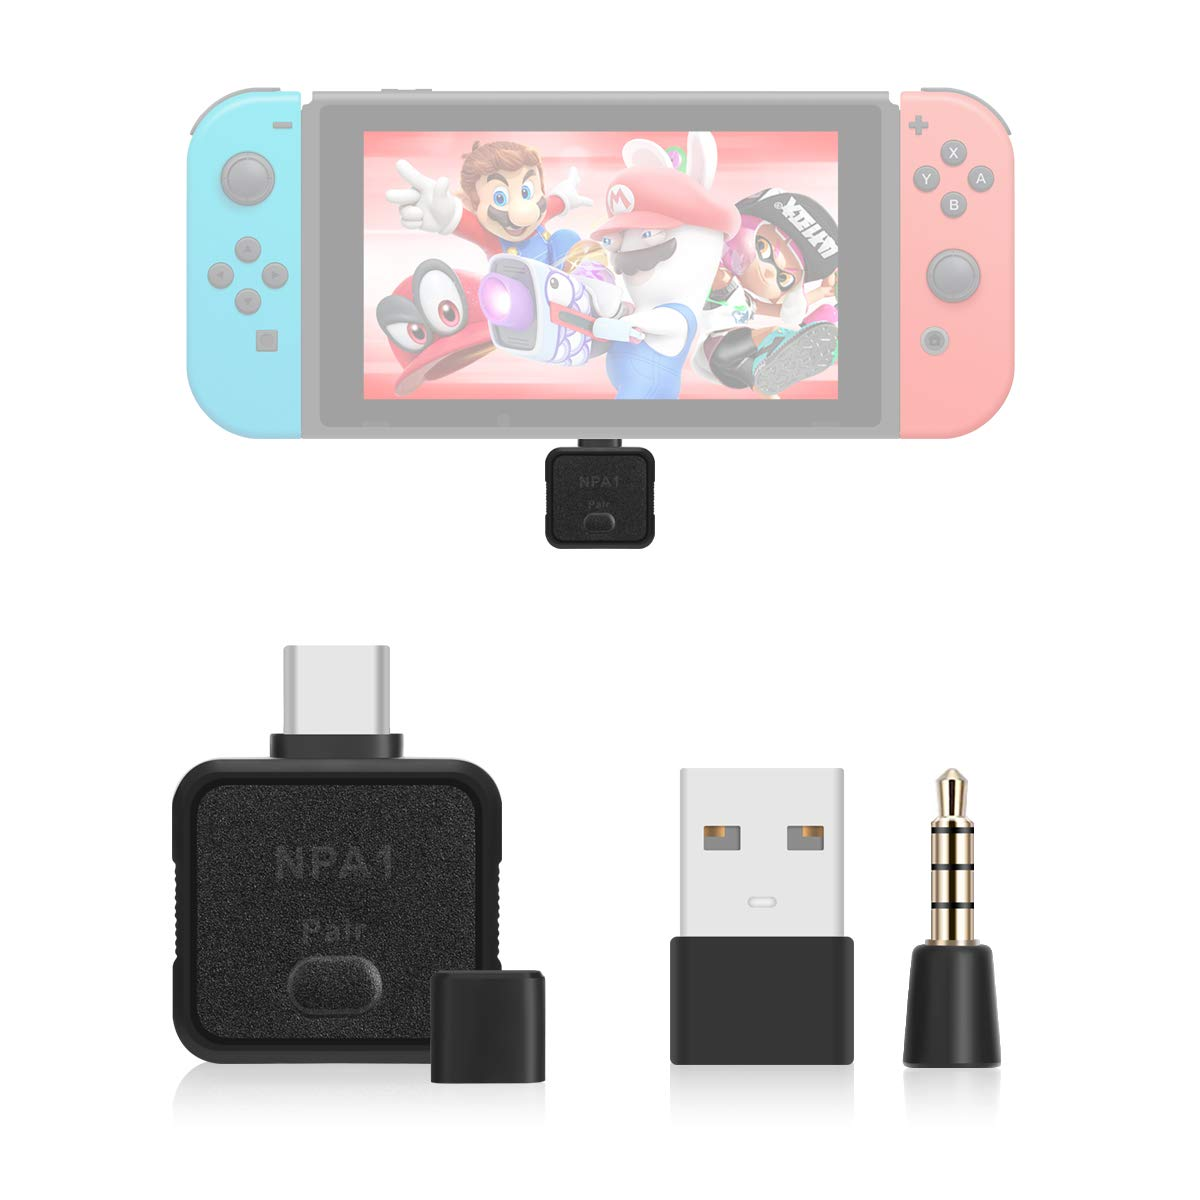 LANMU USB Type C Bluetooth Audio Transmitter Adapter Compatible with Nintendo Switch,PS4,PC,Bluetooth Headphones. by LANMU